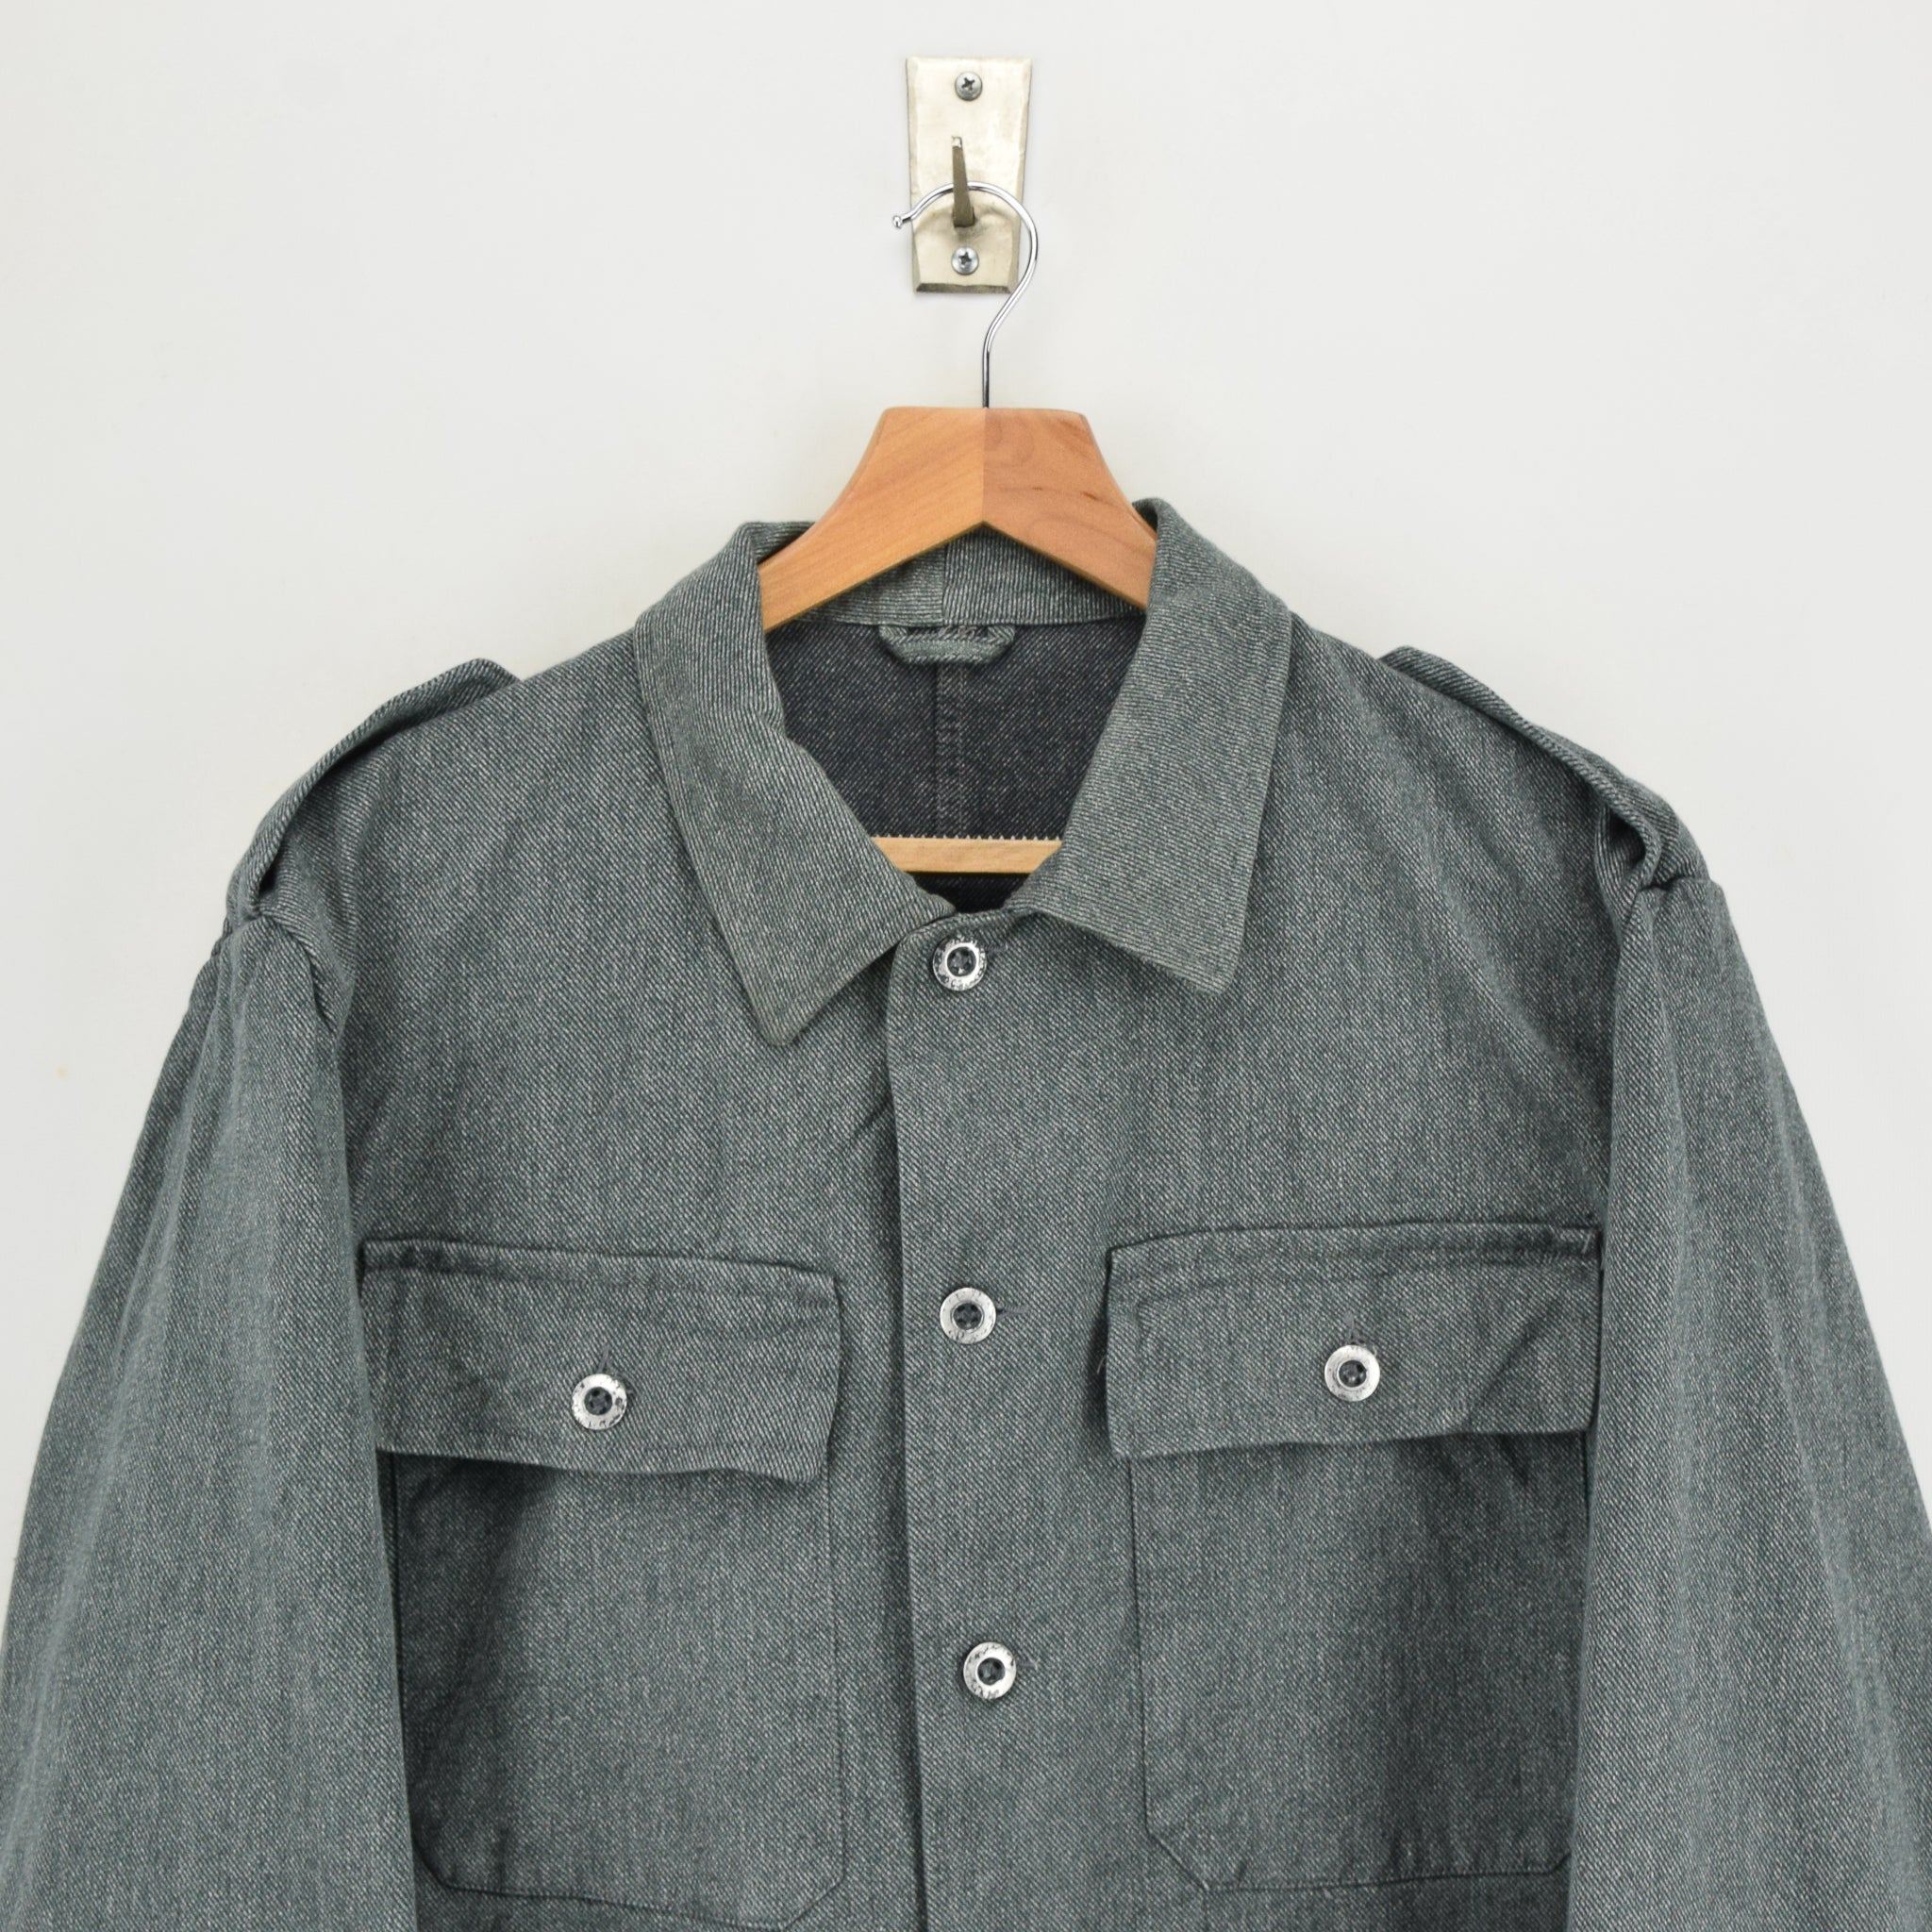 Vintage 40s WWII Era Swiss Army Salt & Pepper Worker Chore Jacket L chest